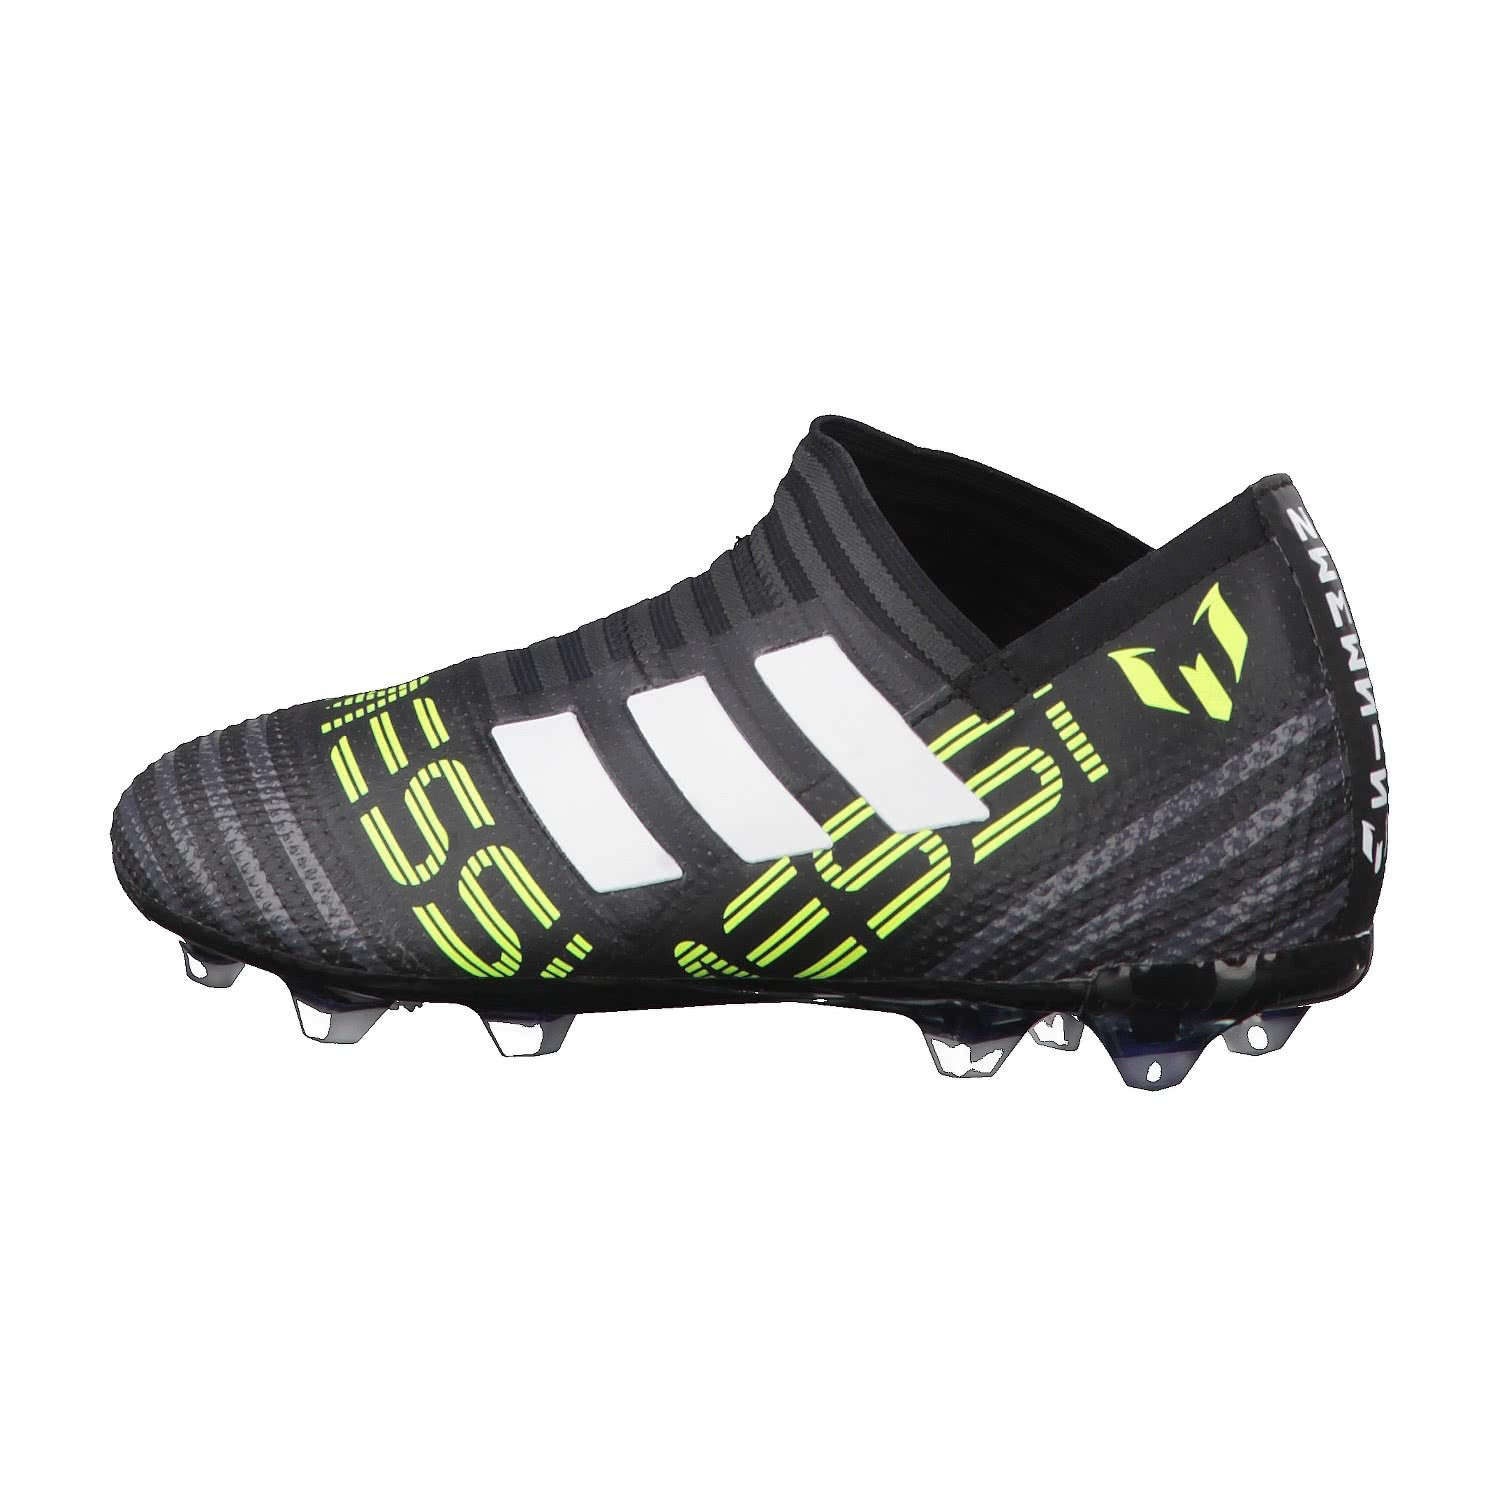 5addb544fd0 adidas Nemeziz Messi 17+ 360 Agility Kids FG Football Boots - Core  Black White Solar Yellow  Amazon.co.uk  Shoes   Bags